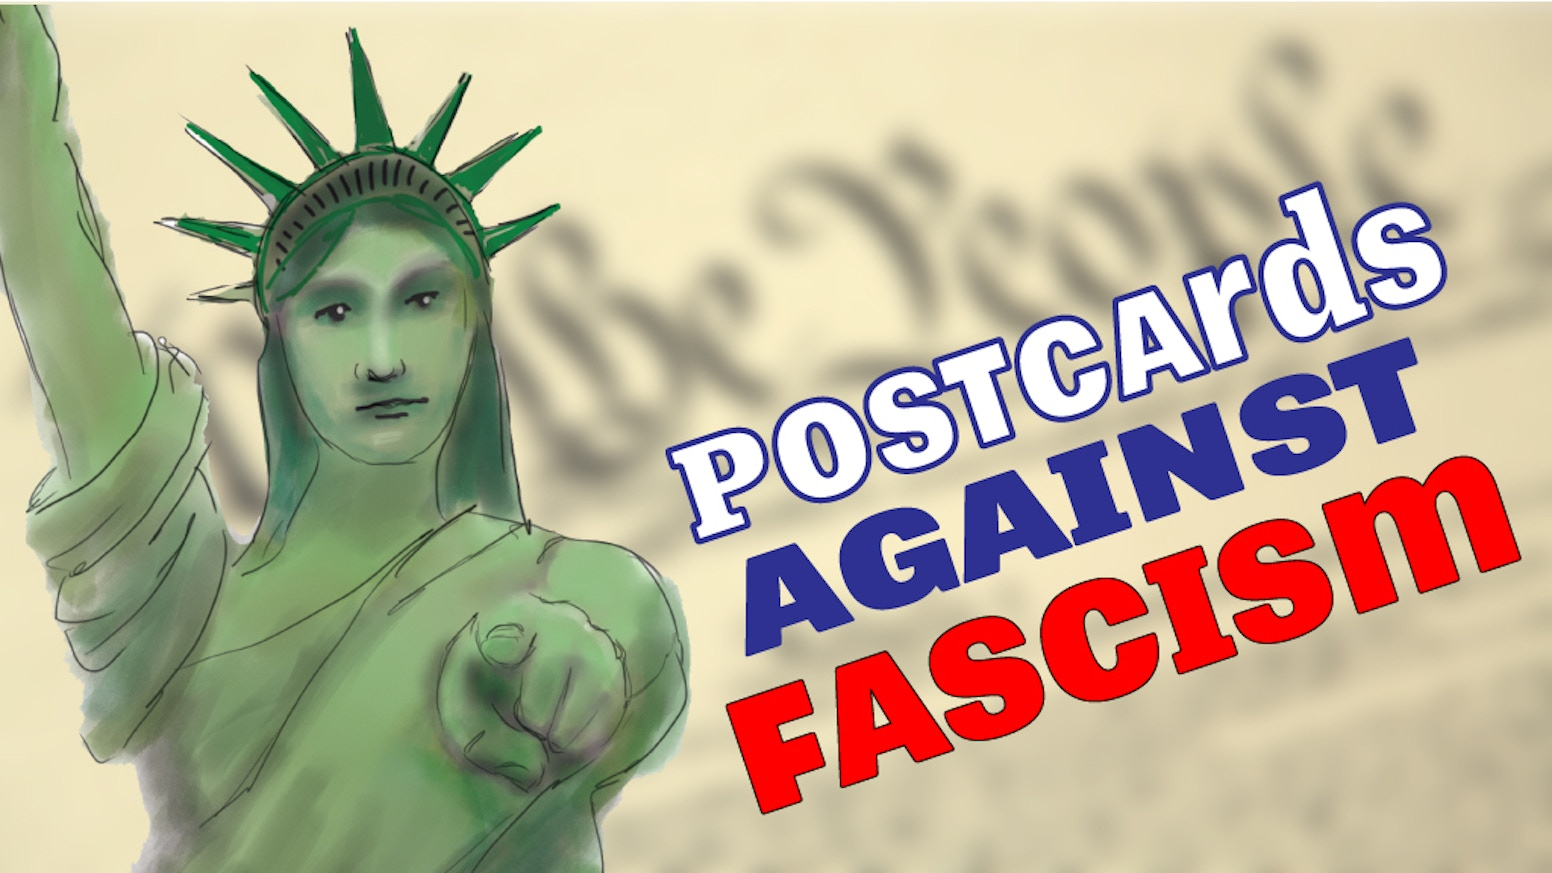 12 original, themed postcards for mailing to your elected representatives, by artist/designer Wendy Sheridan. Contact me if you need bulk quantities (100 or more) for GOTV and VBM mailing efforts in your community.